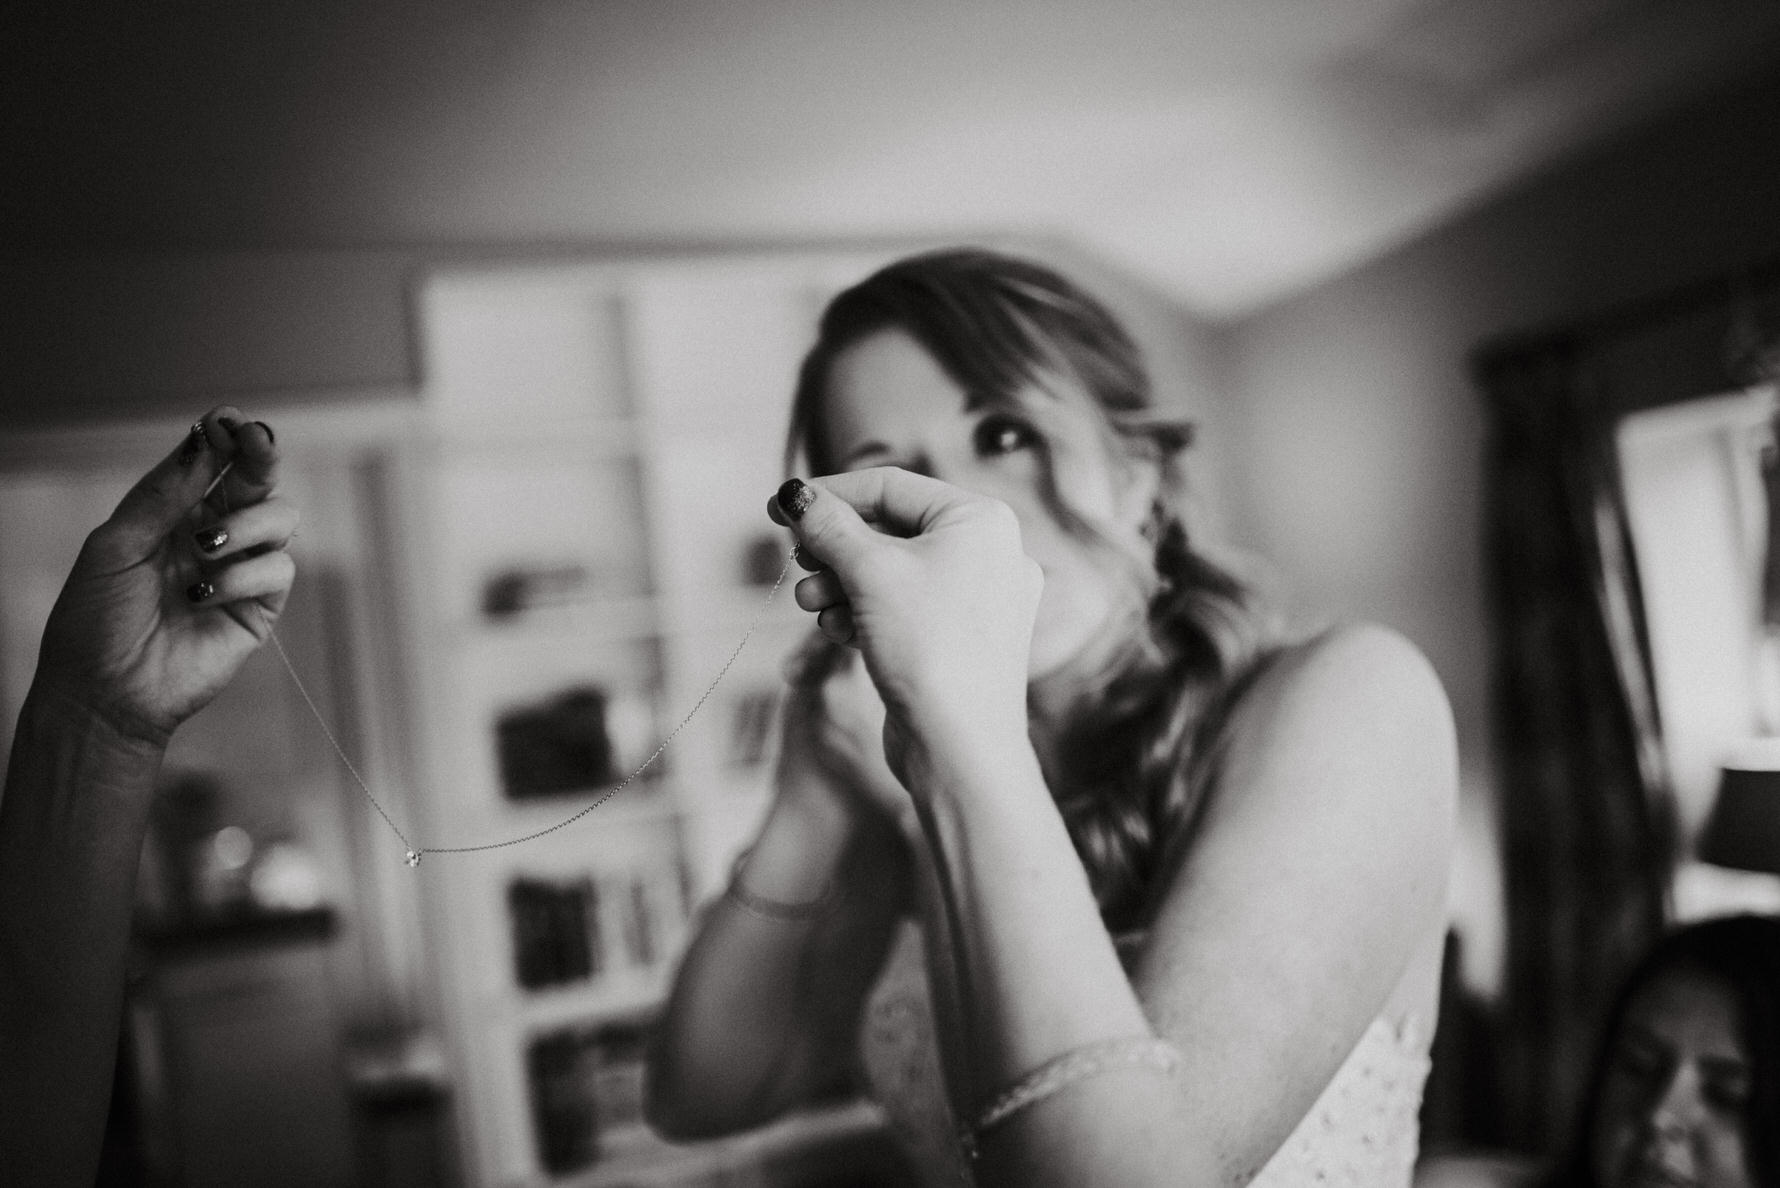 Cheshire documentary wedding photography by Louise Jacob - A bridesmaid putting on the brides necklace